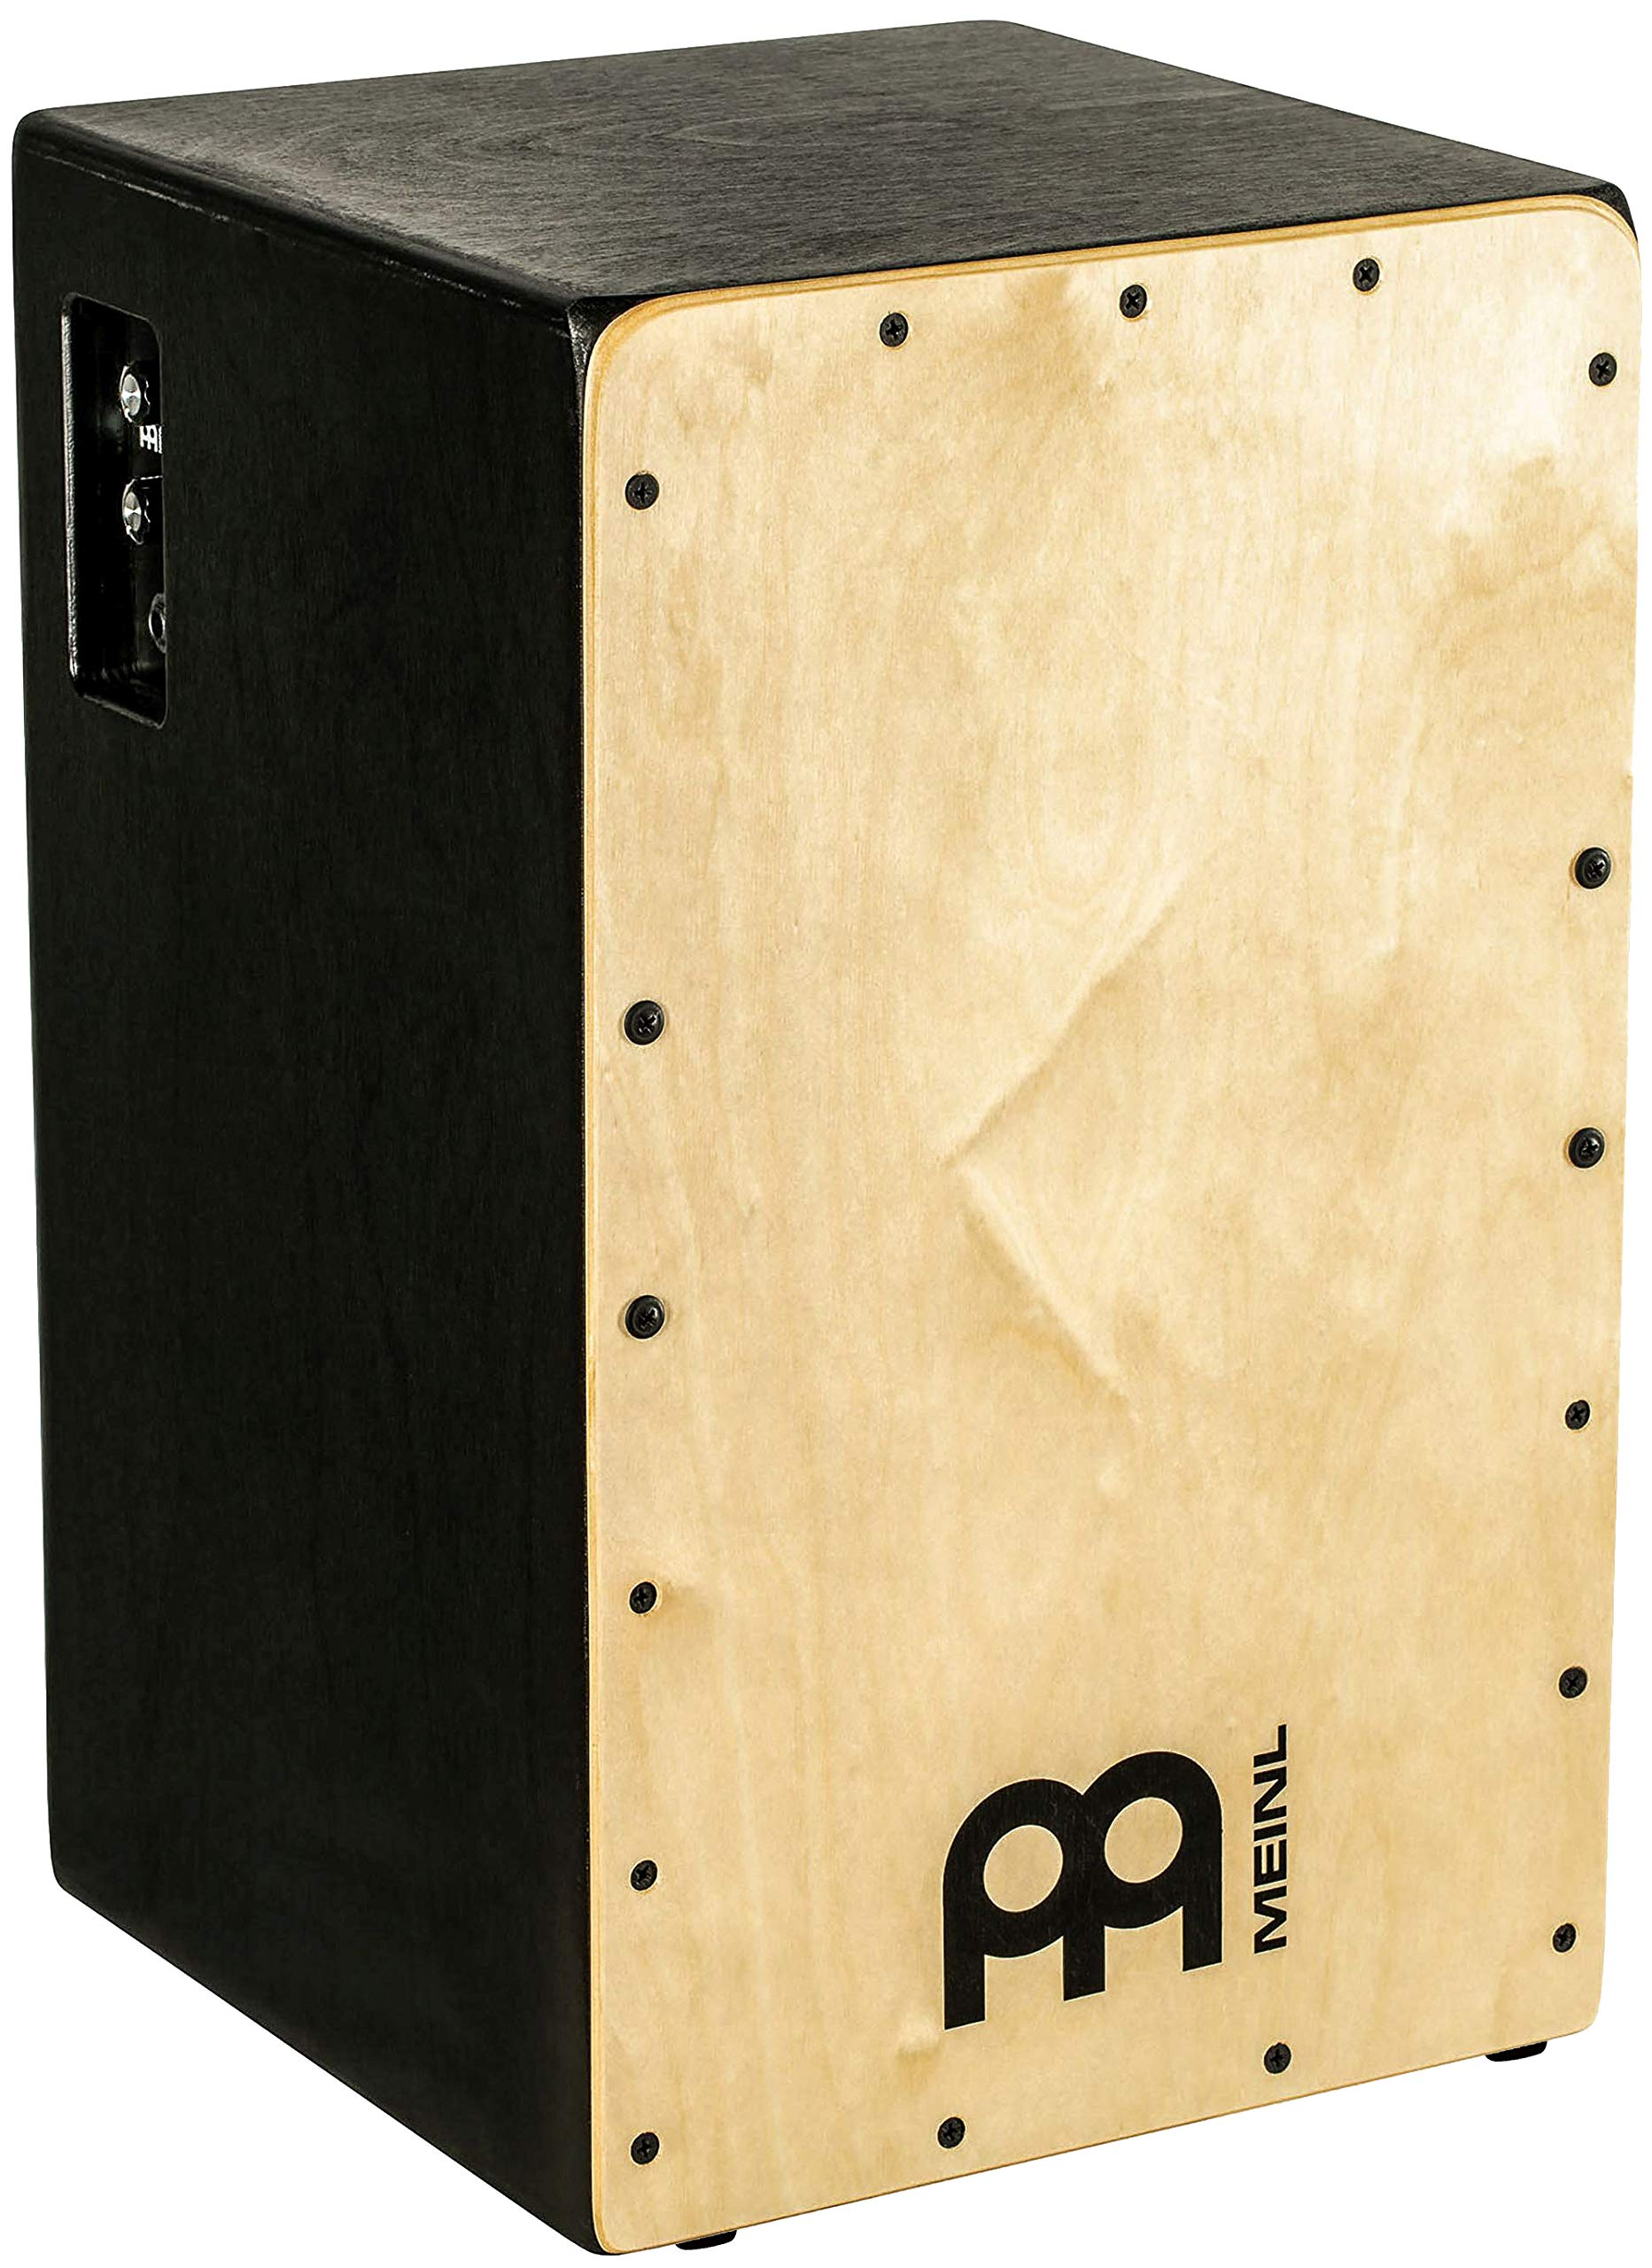 Meinl Pickup Cajon Box Drum with Internal Snares - MADE IN EUROPE - Baltic Birch Wood, Snarecraft Series, 2-YEAR WARRANTY (PSC100B) by Meinl Percussion (Image #1)